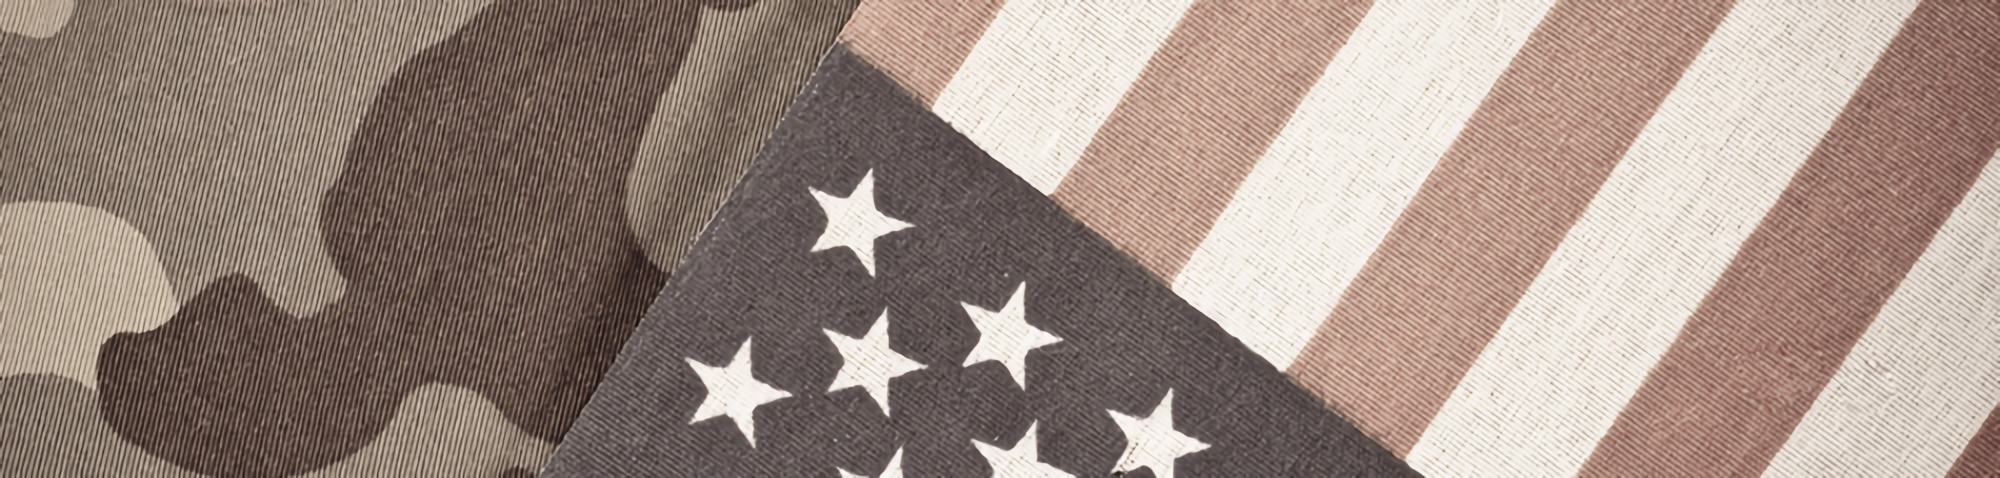 Government Jobs US flag and camo